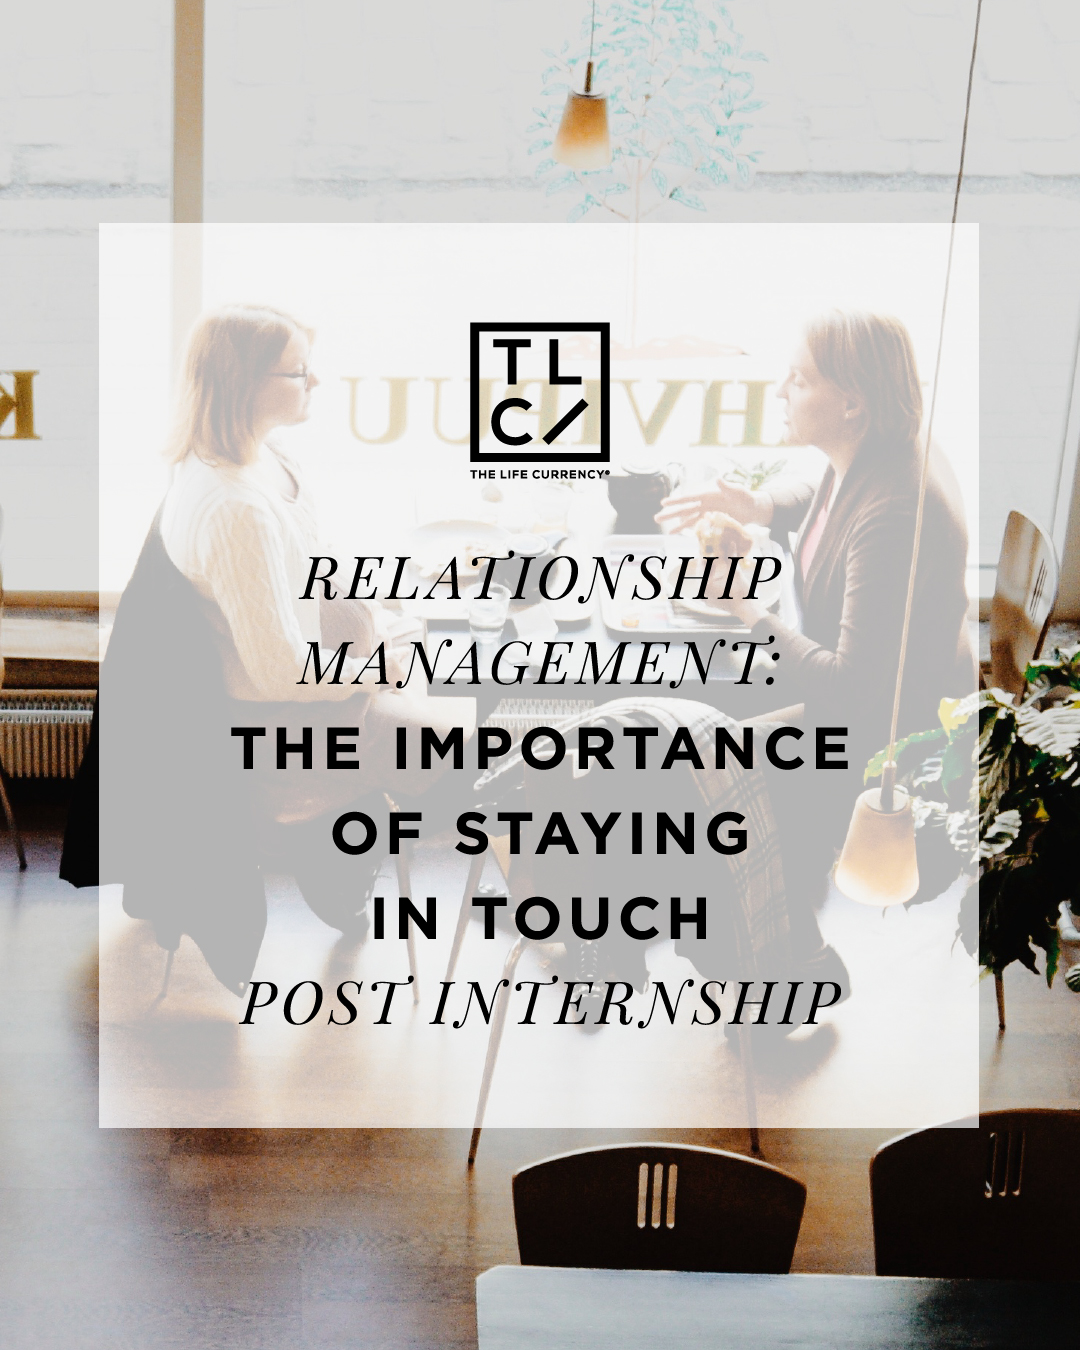 Relationship Management: The Importance of Staying in Touch Post Internship